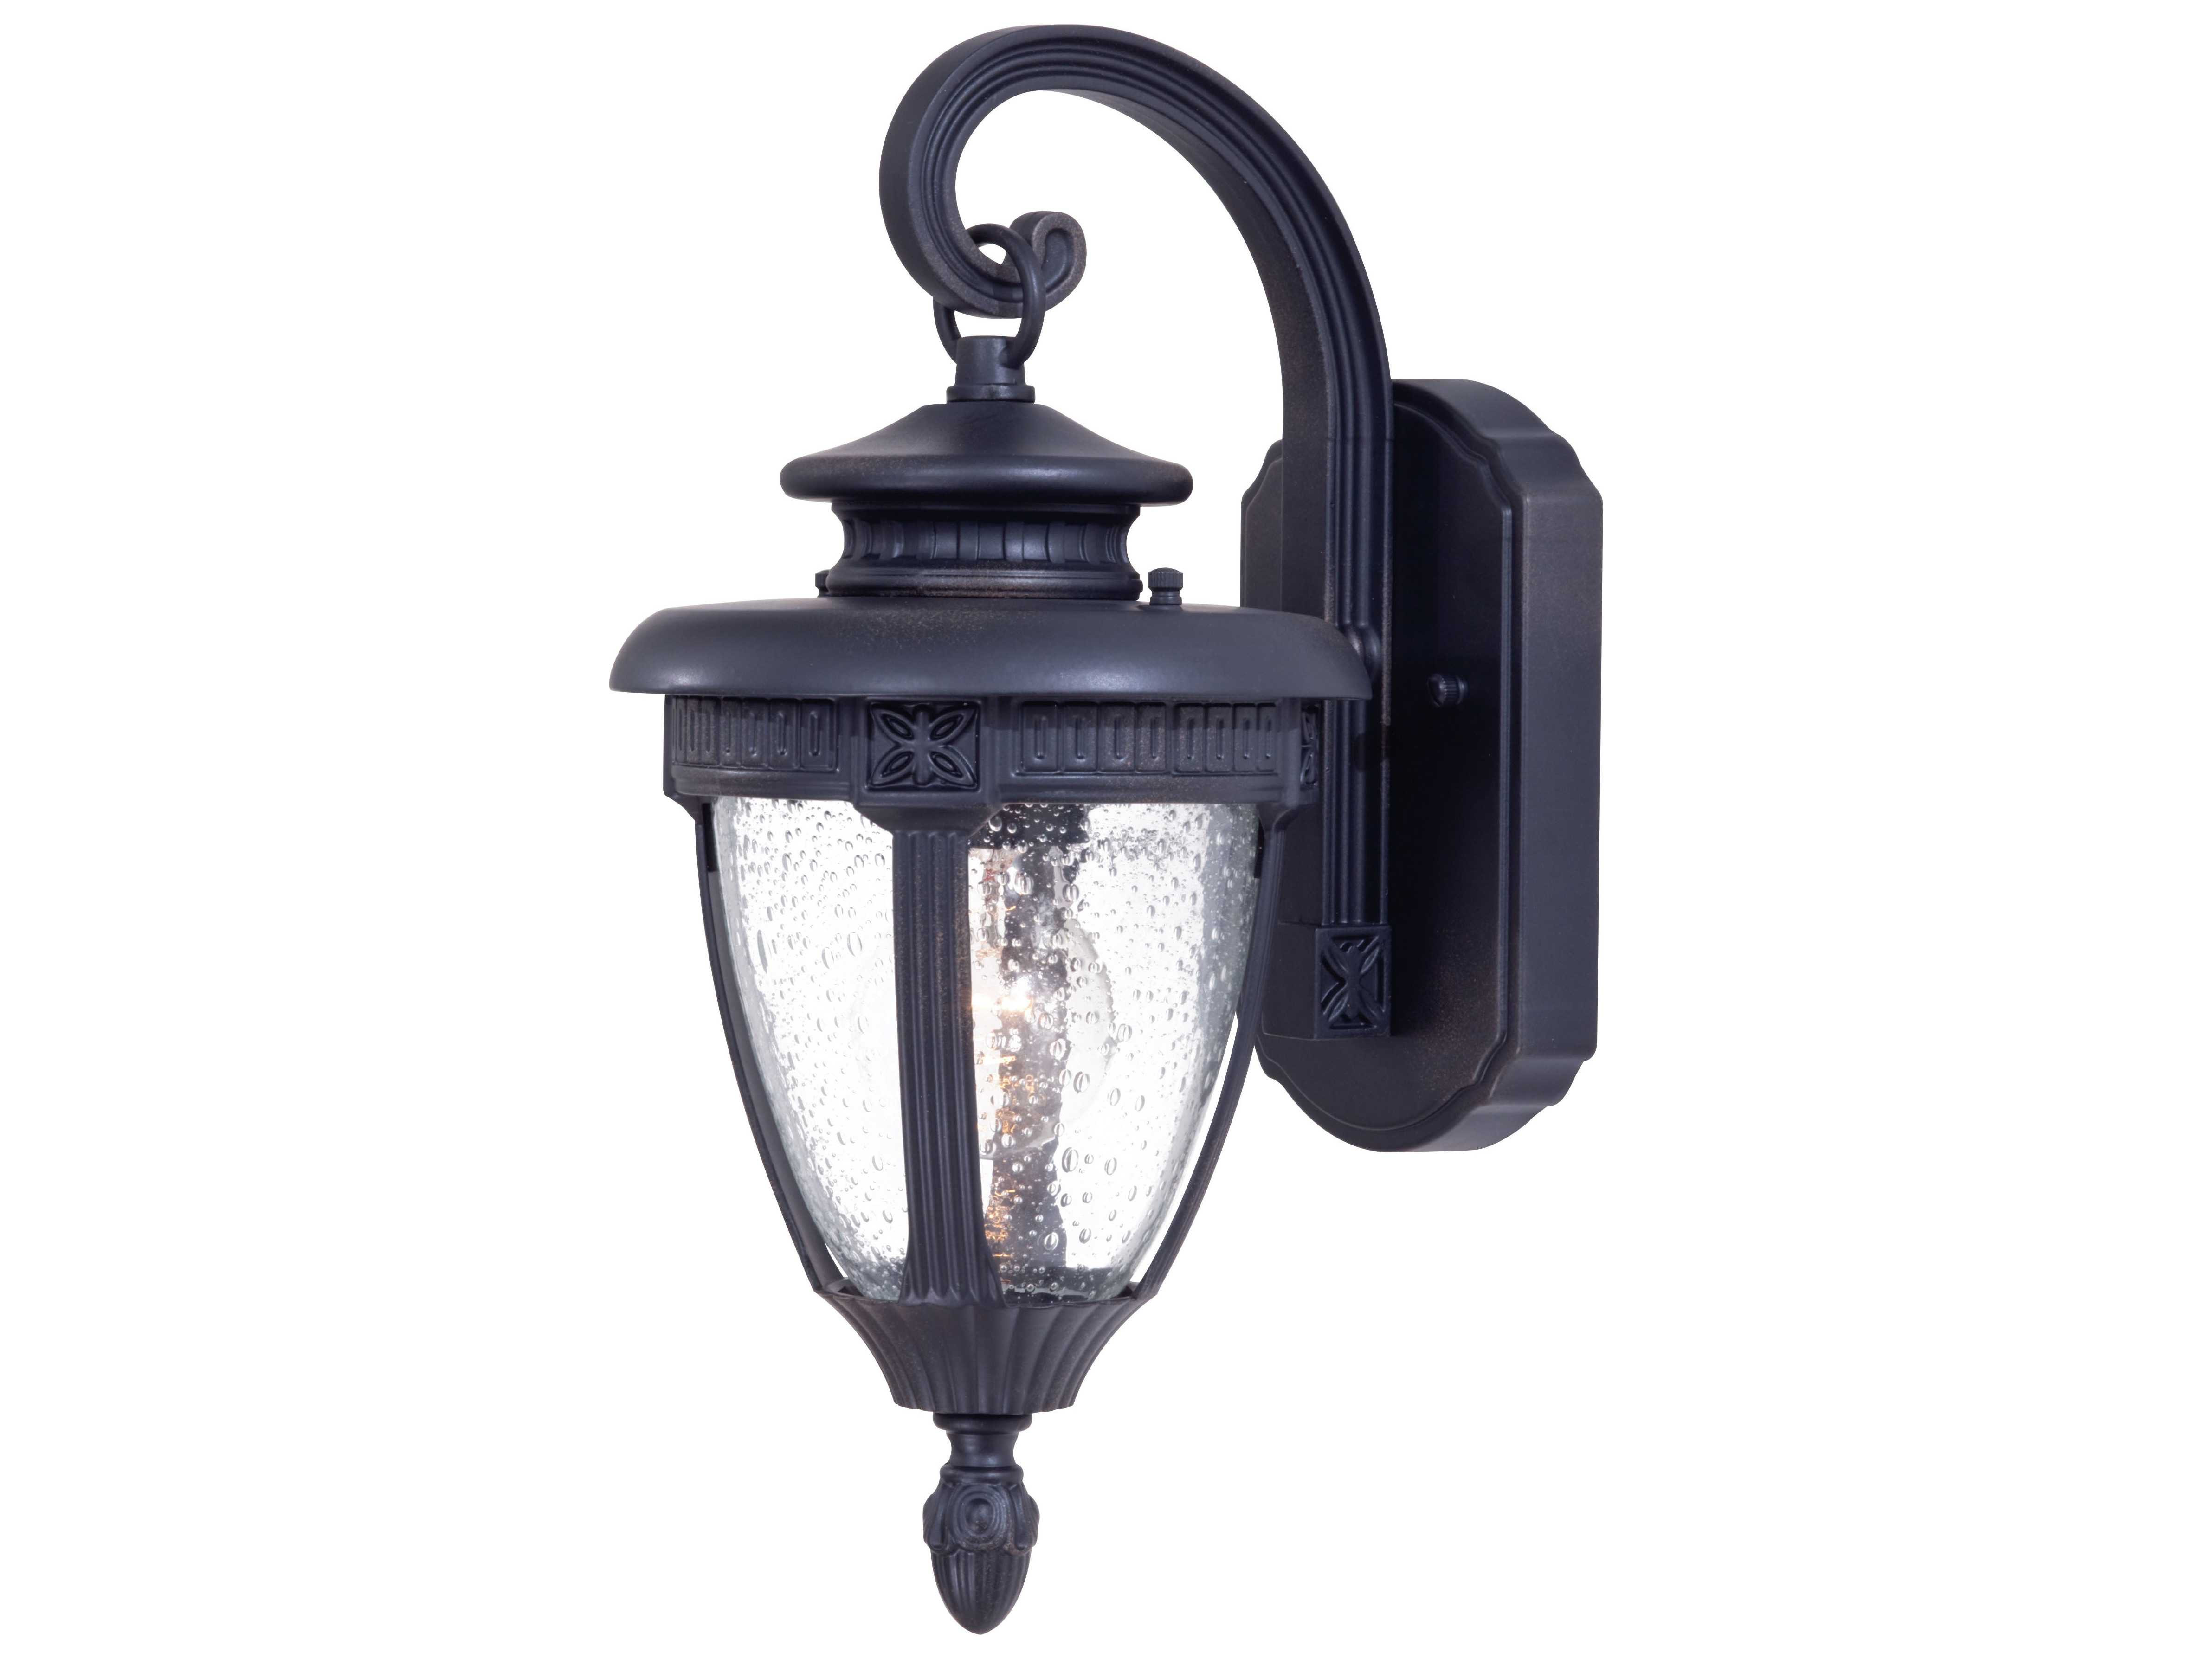 Best ideas about Minka Lavery Lighting . Save or Pin Minka Lavery Burwick Heritage Outdoor Wall light Now.